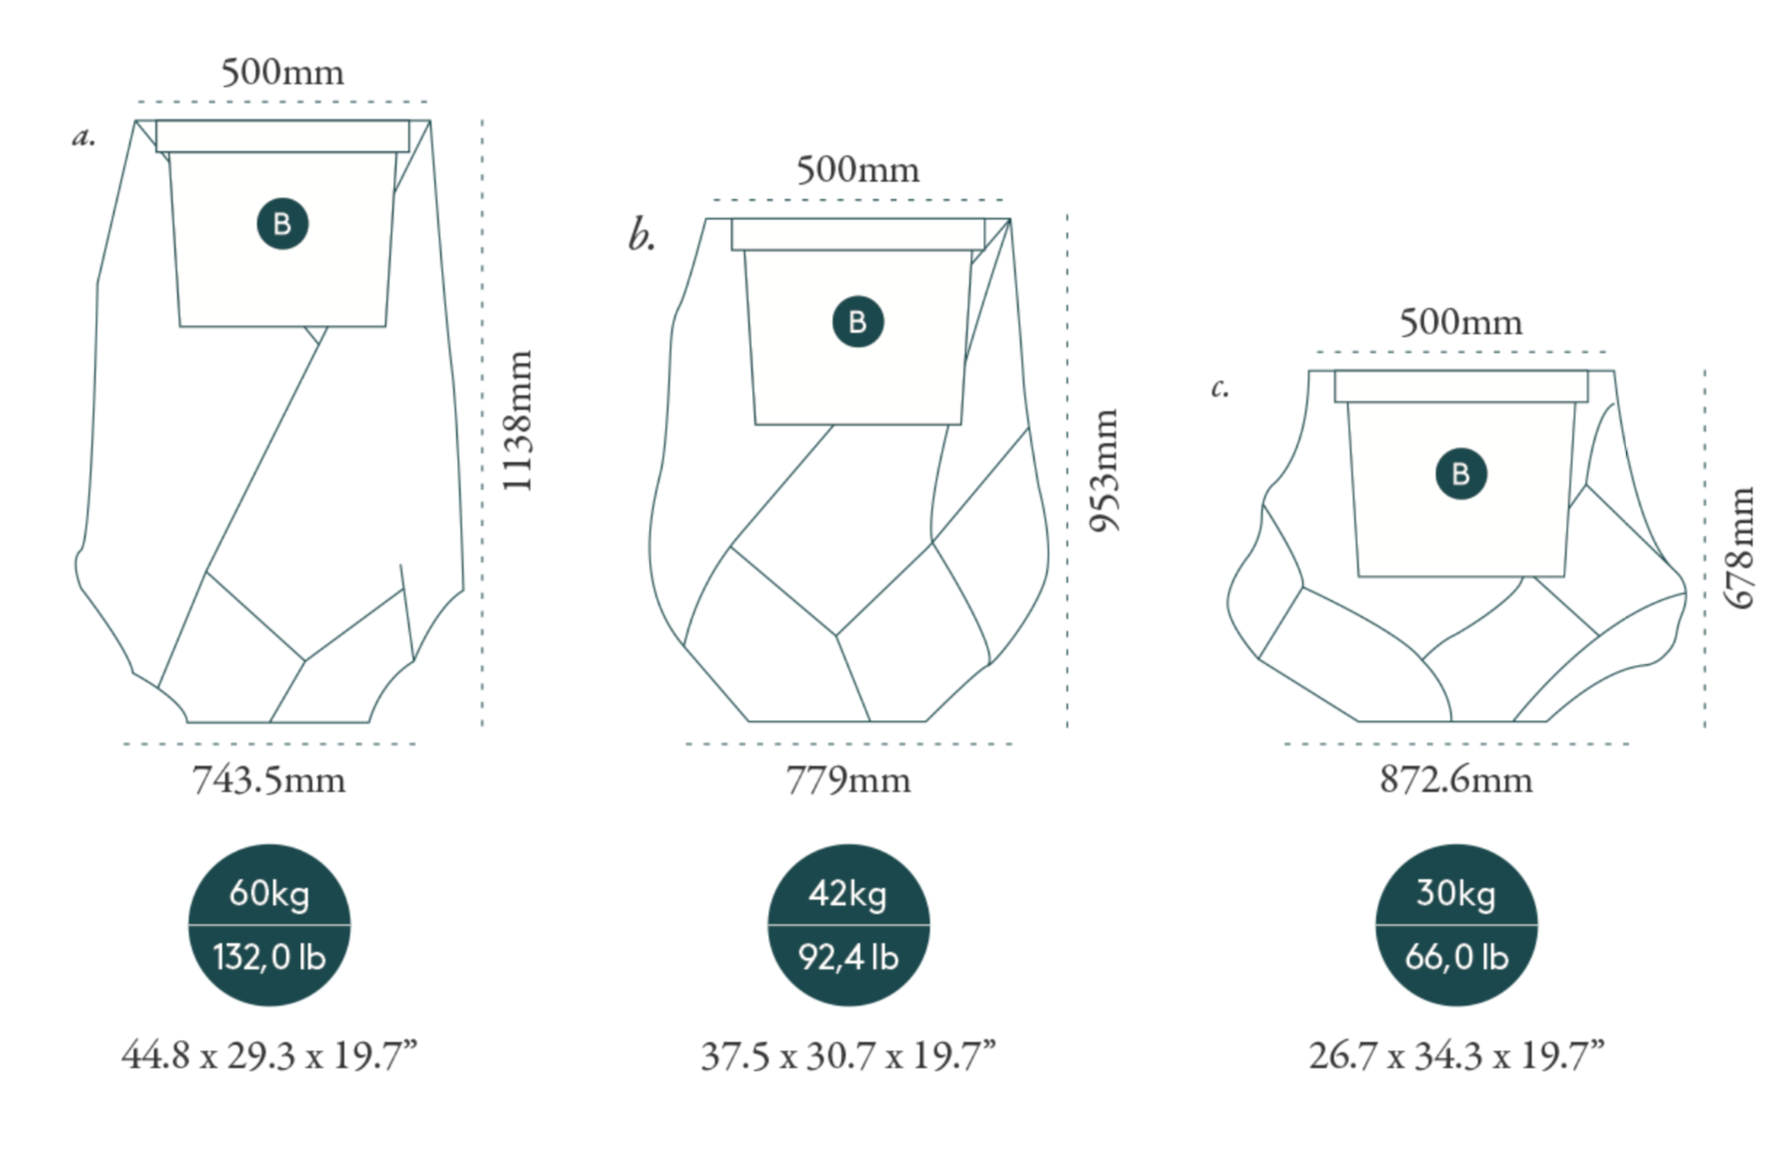 bhaca planter dimensions